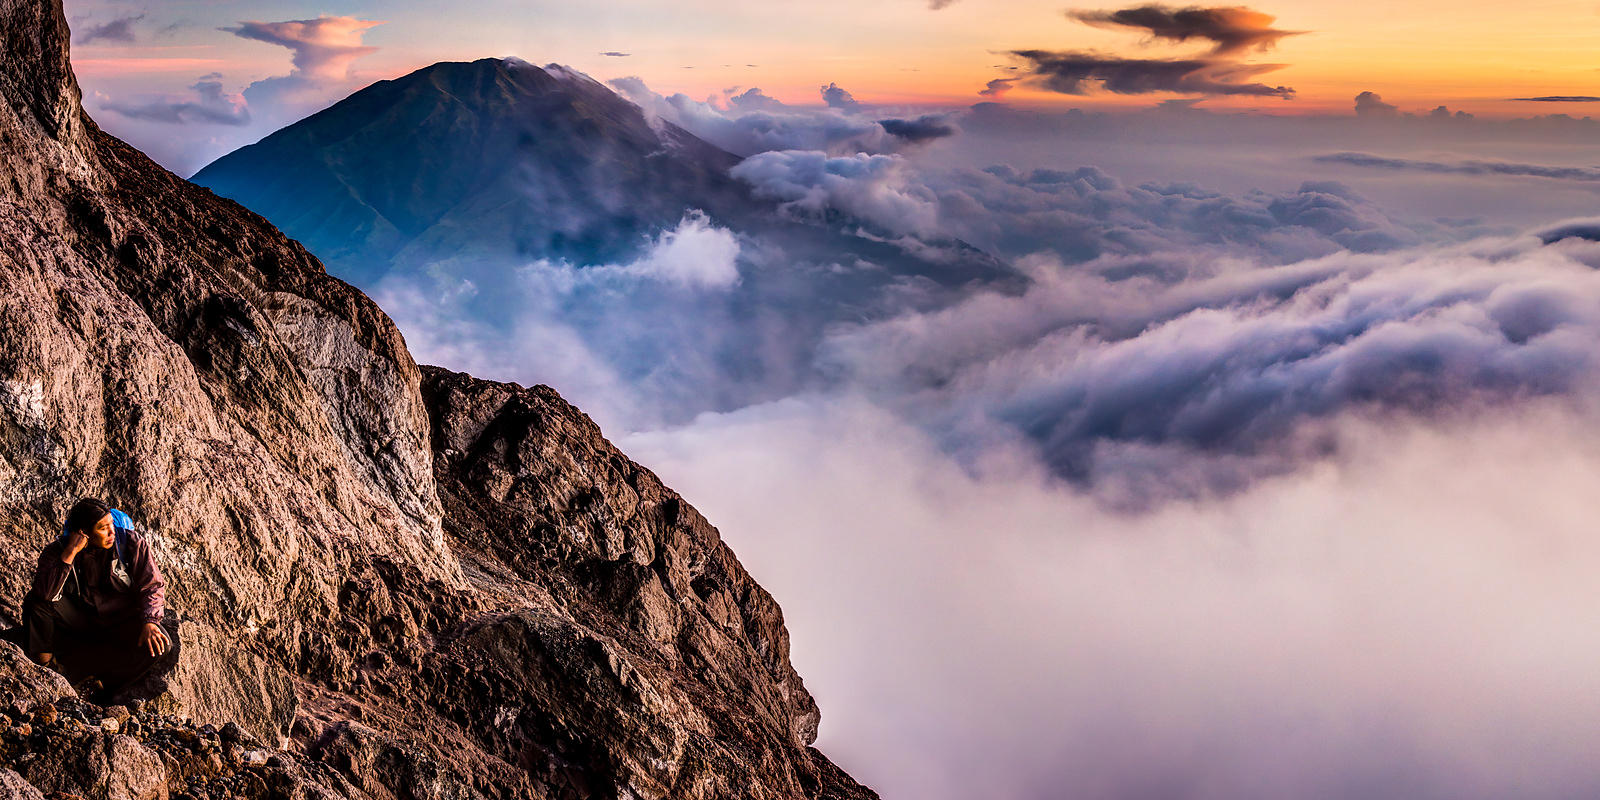 From Mt. Merapi at Sunrise.  Gunung Merbabu is in the distance.  Near Yogyakarta, Indonesia.